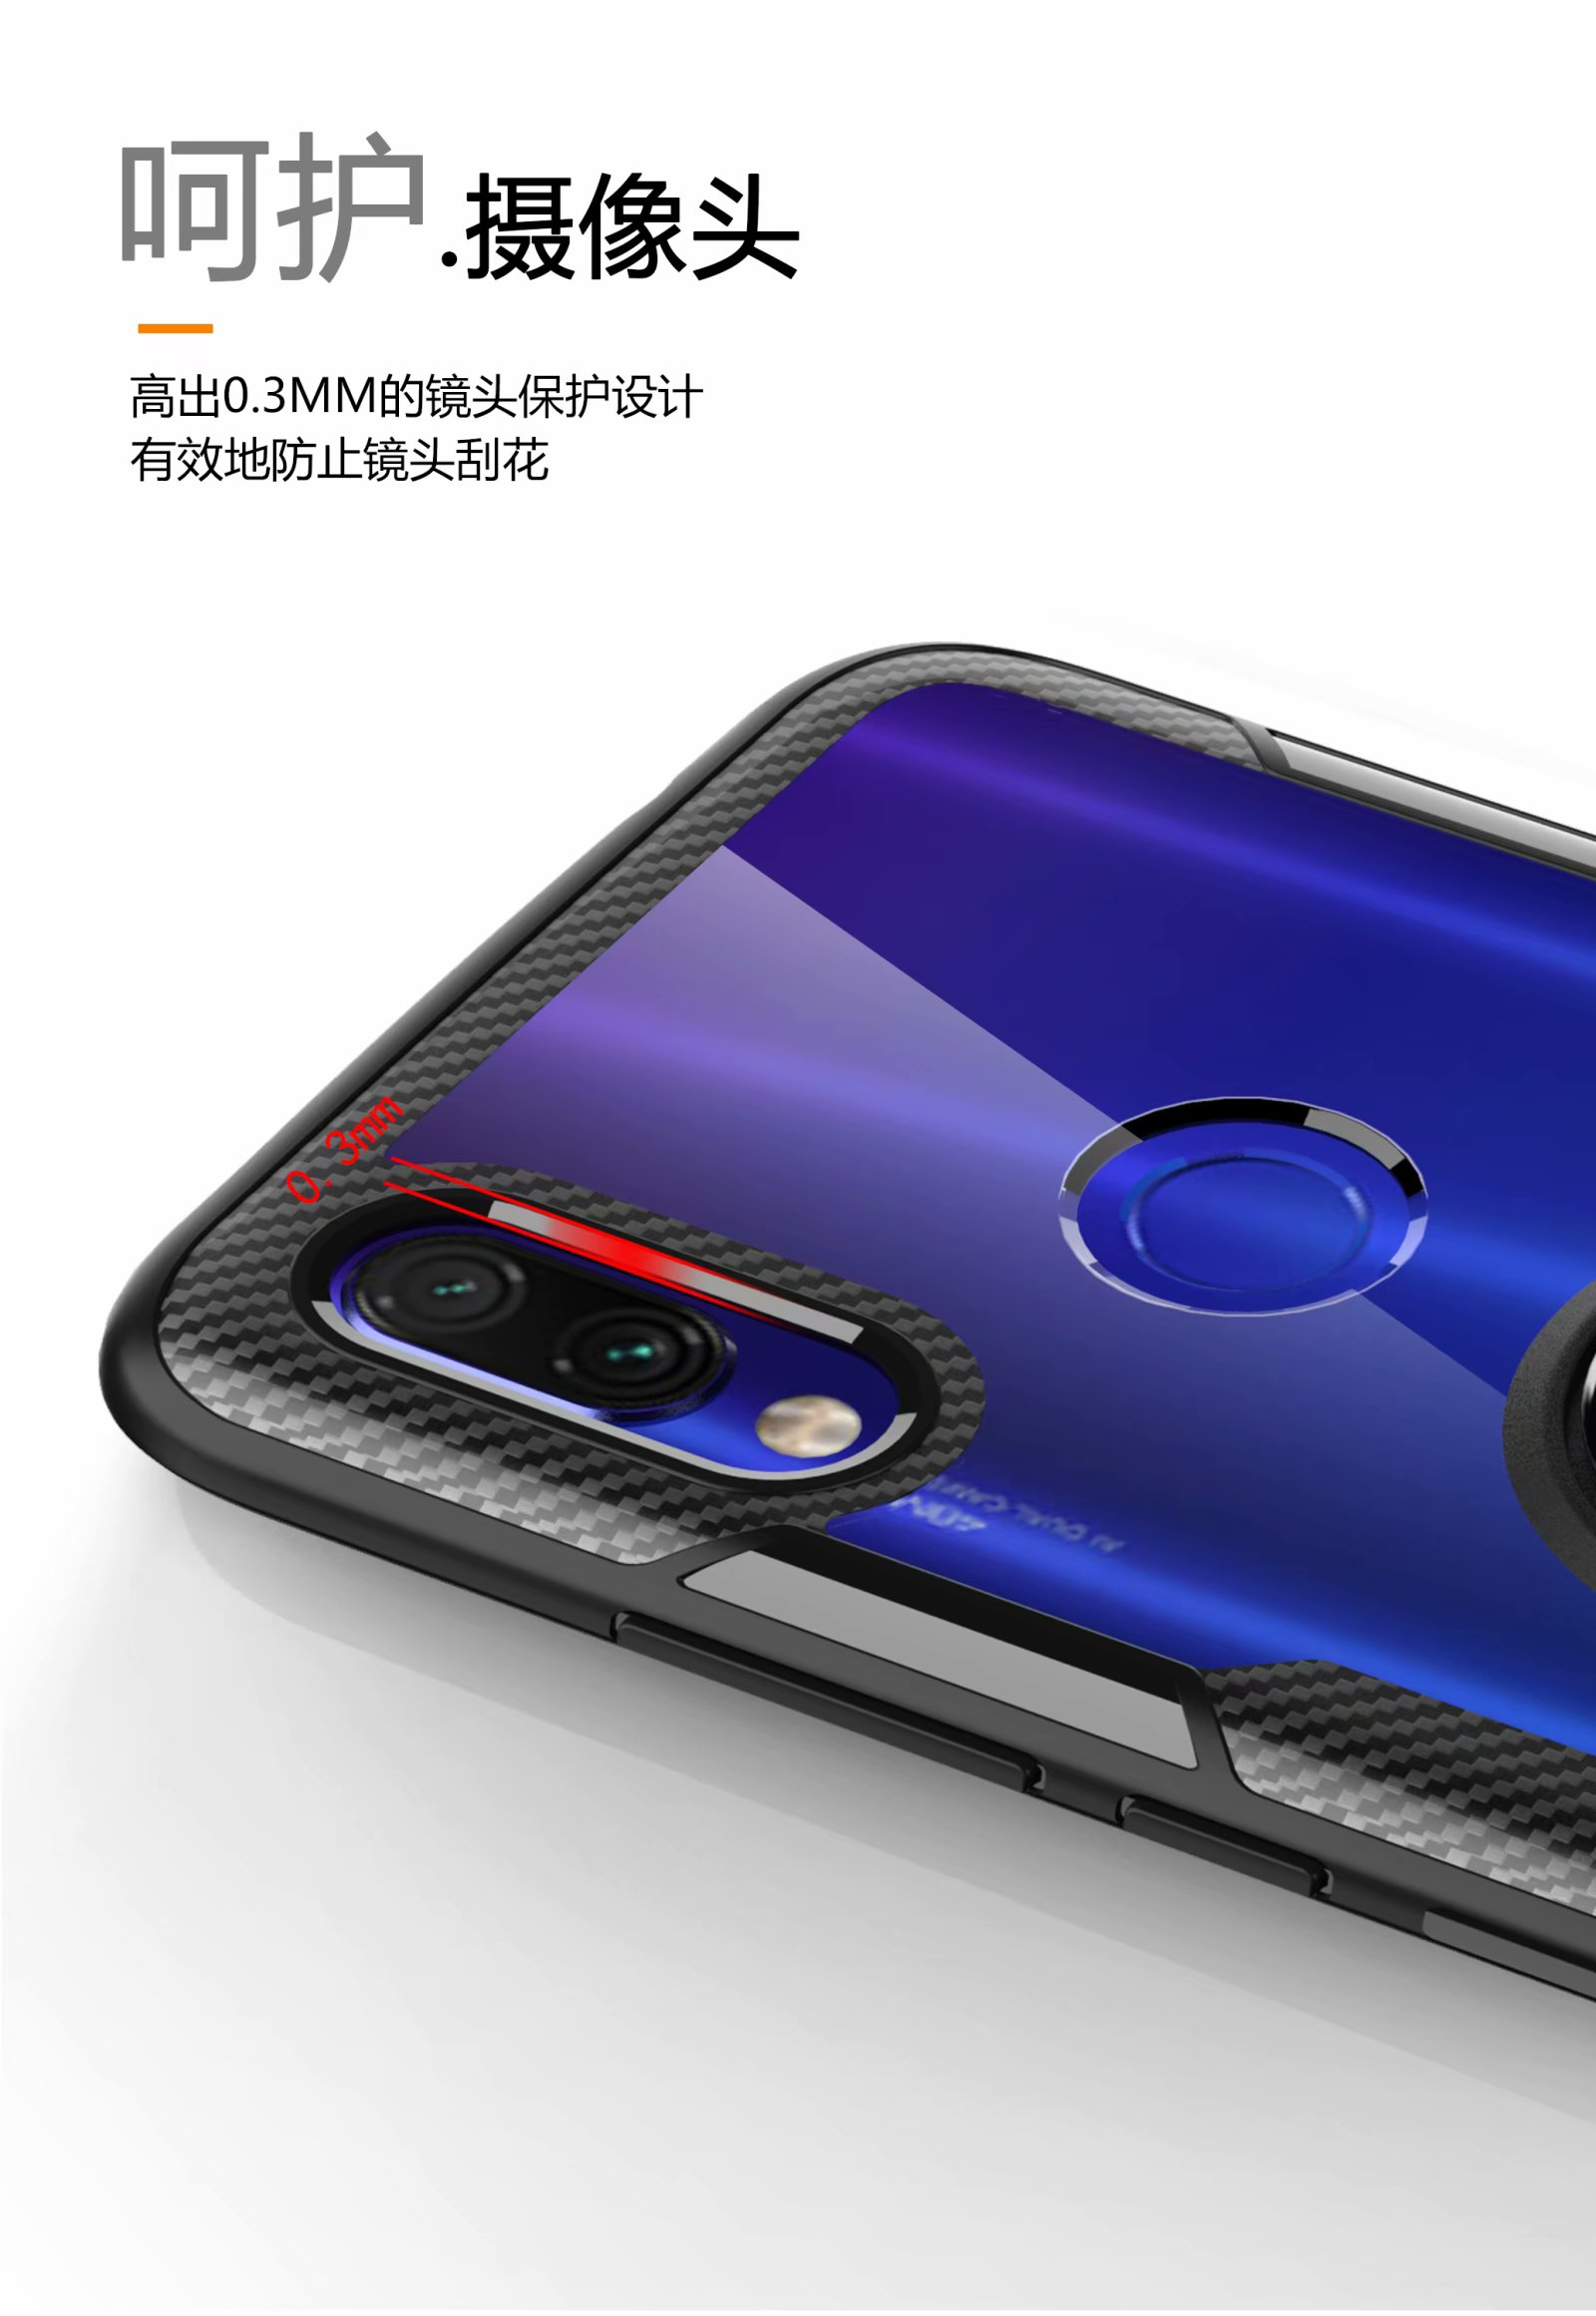 HTB10D1vUMHqK1RjSZFgq6y7JXXae For Xiaomi Redmi Note 7 Pro Case With Ring Stand Magnet Transparent shockproof Protective Back Cover case for xiaomi redmi 7